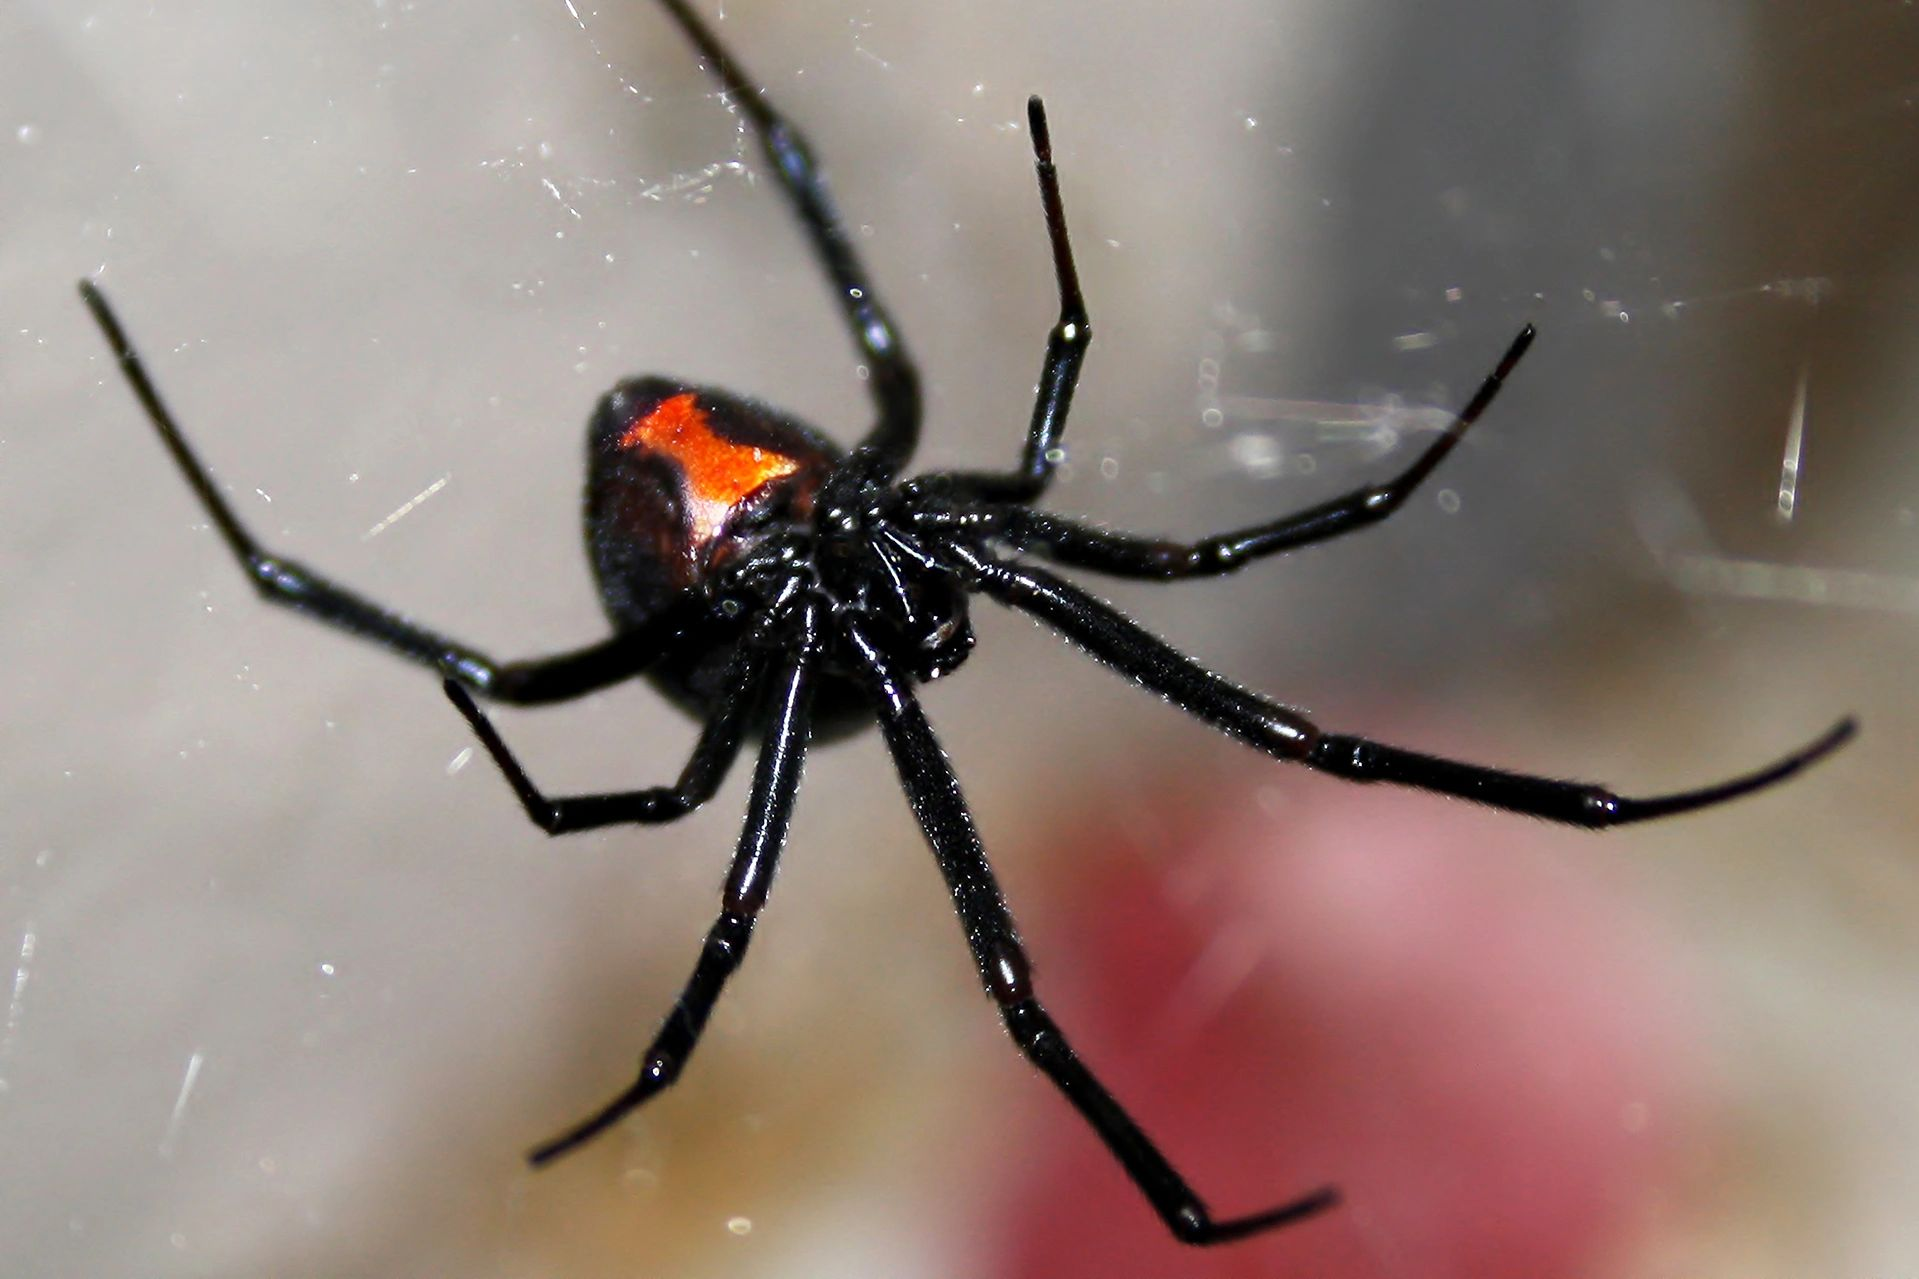 The black widow spider. They are located in Jacksonville, Sherwood and Little Rock Arkansas.